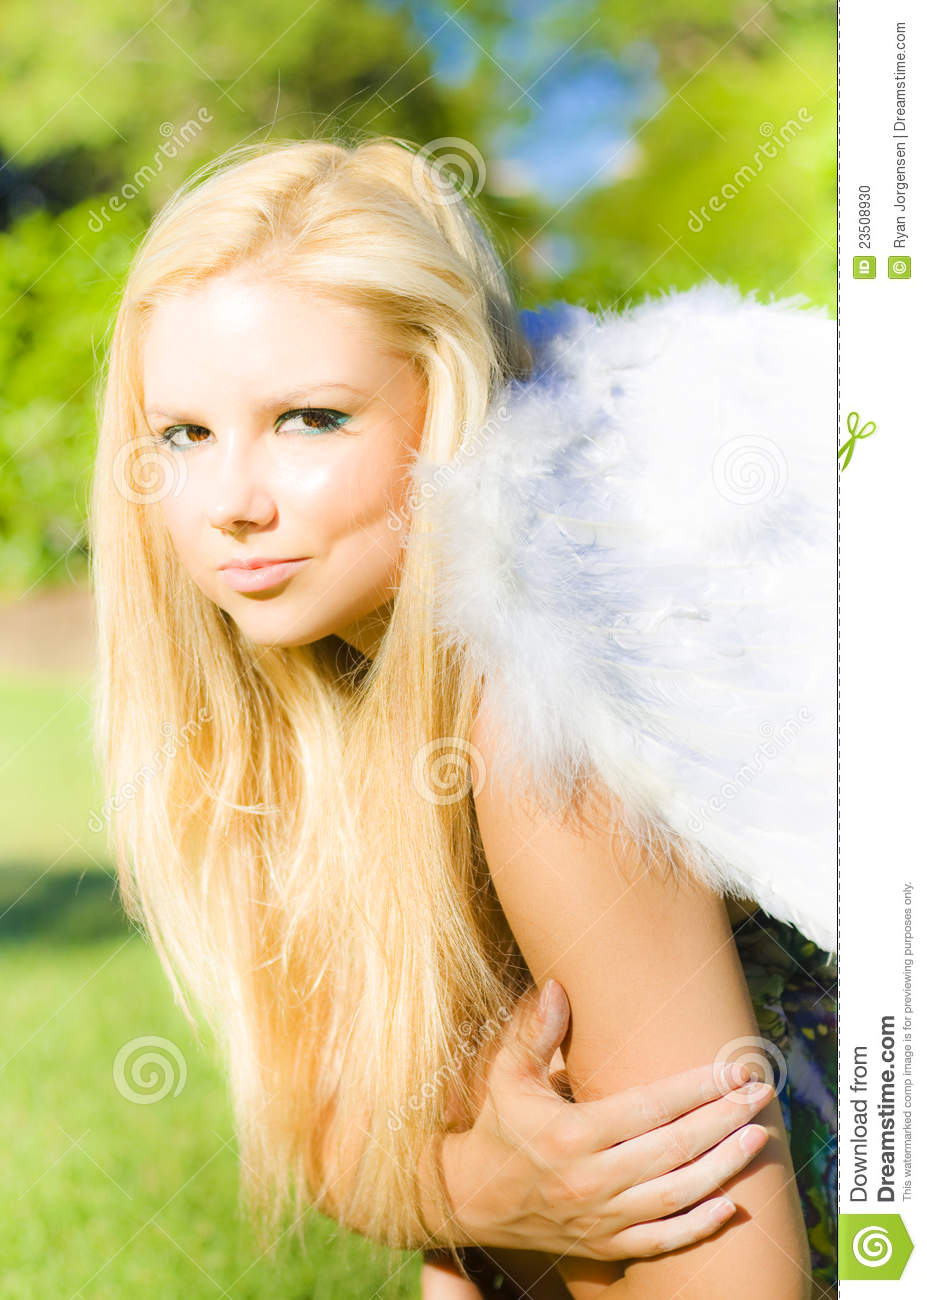 The blonde angel